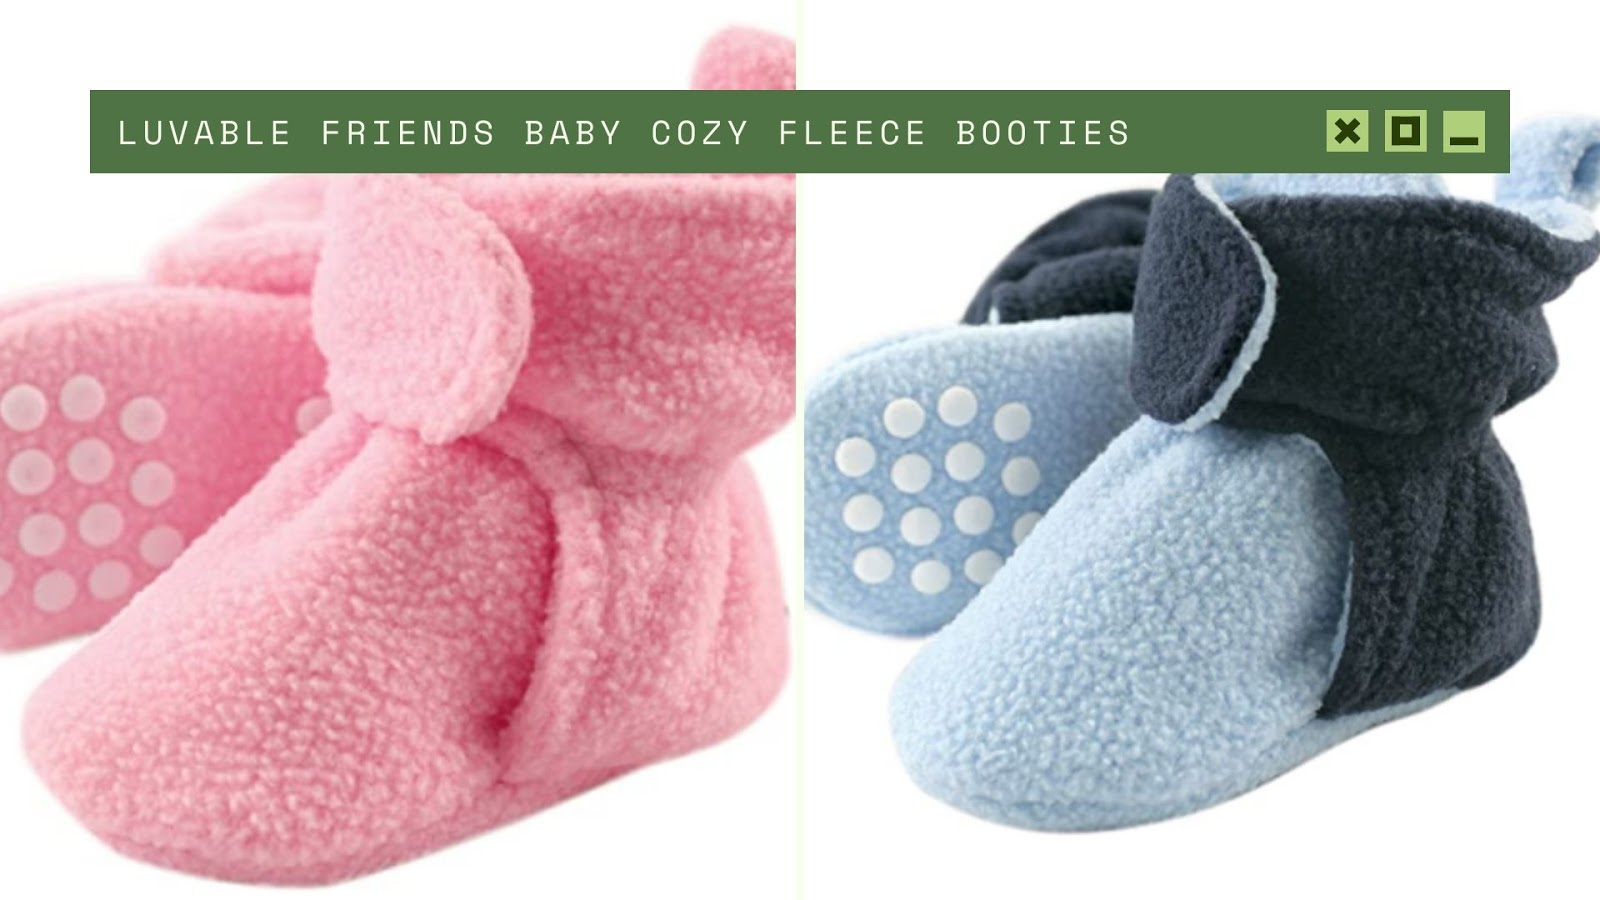 shopping for newborn Luvable Friends Baby Cozy Fleece Booties